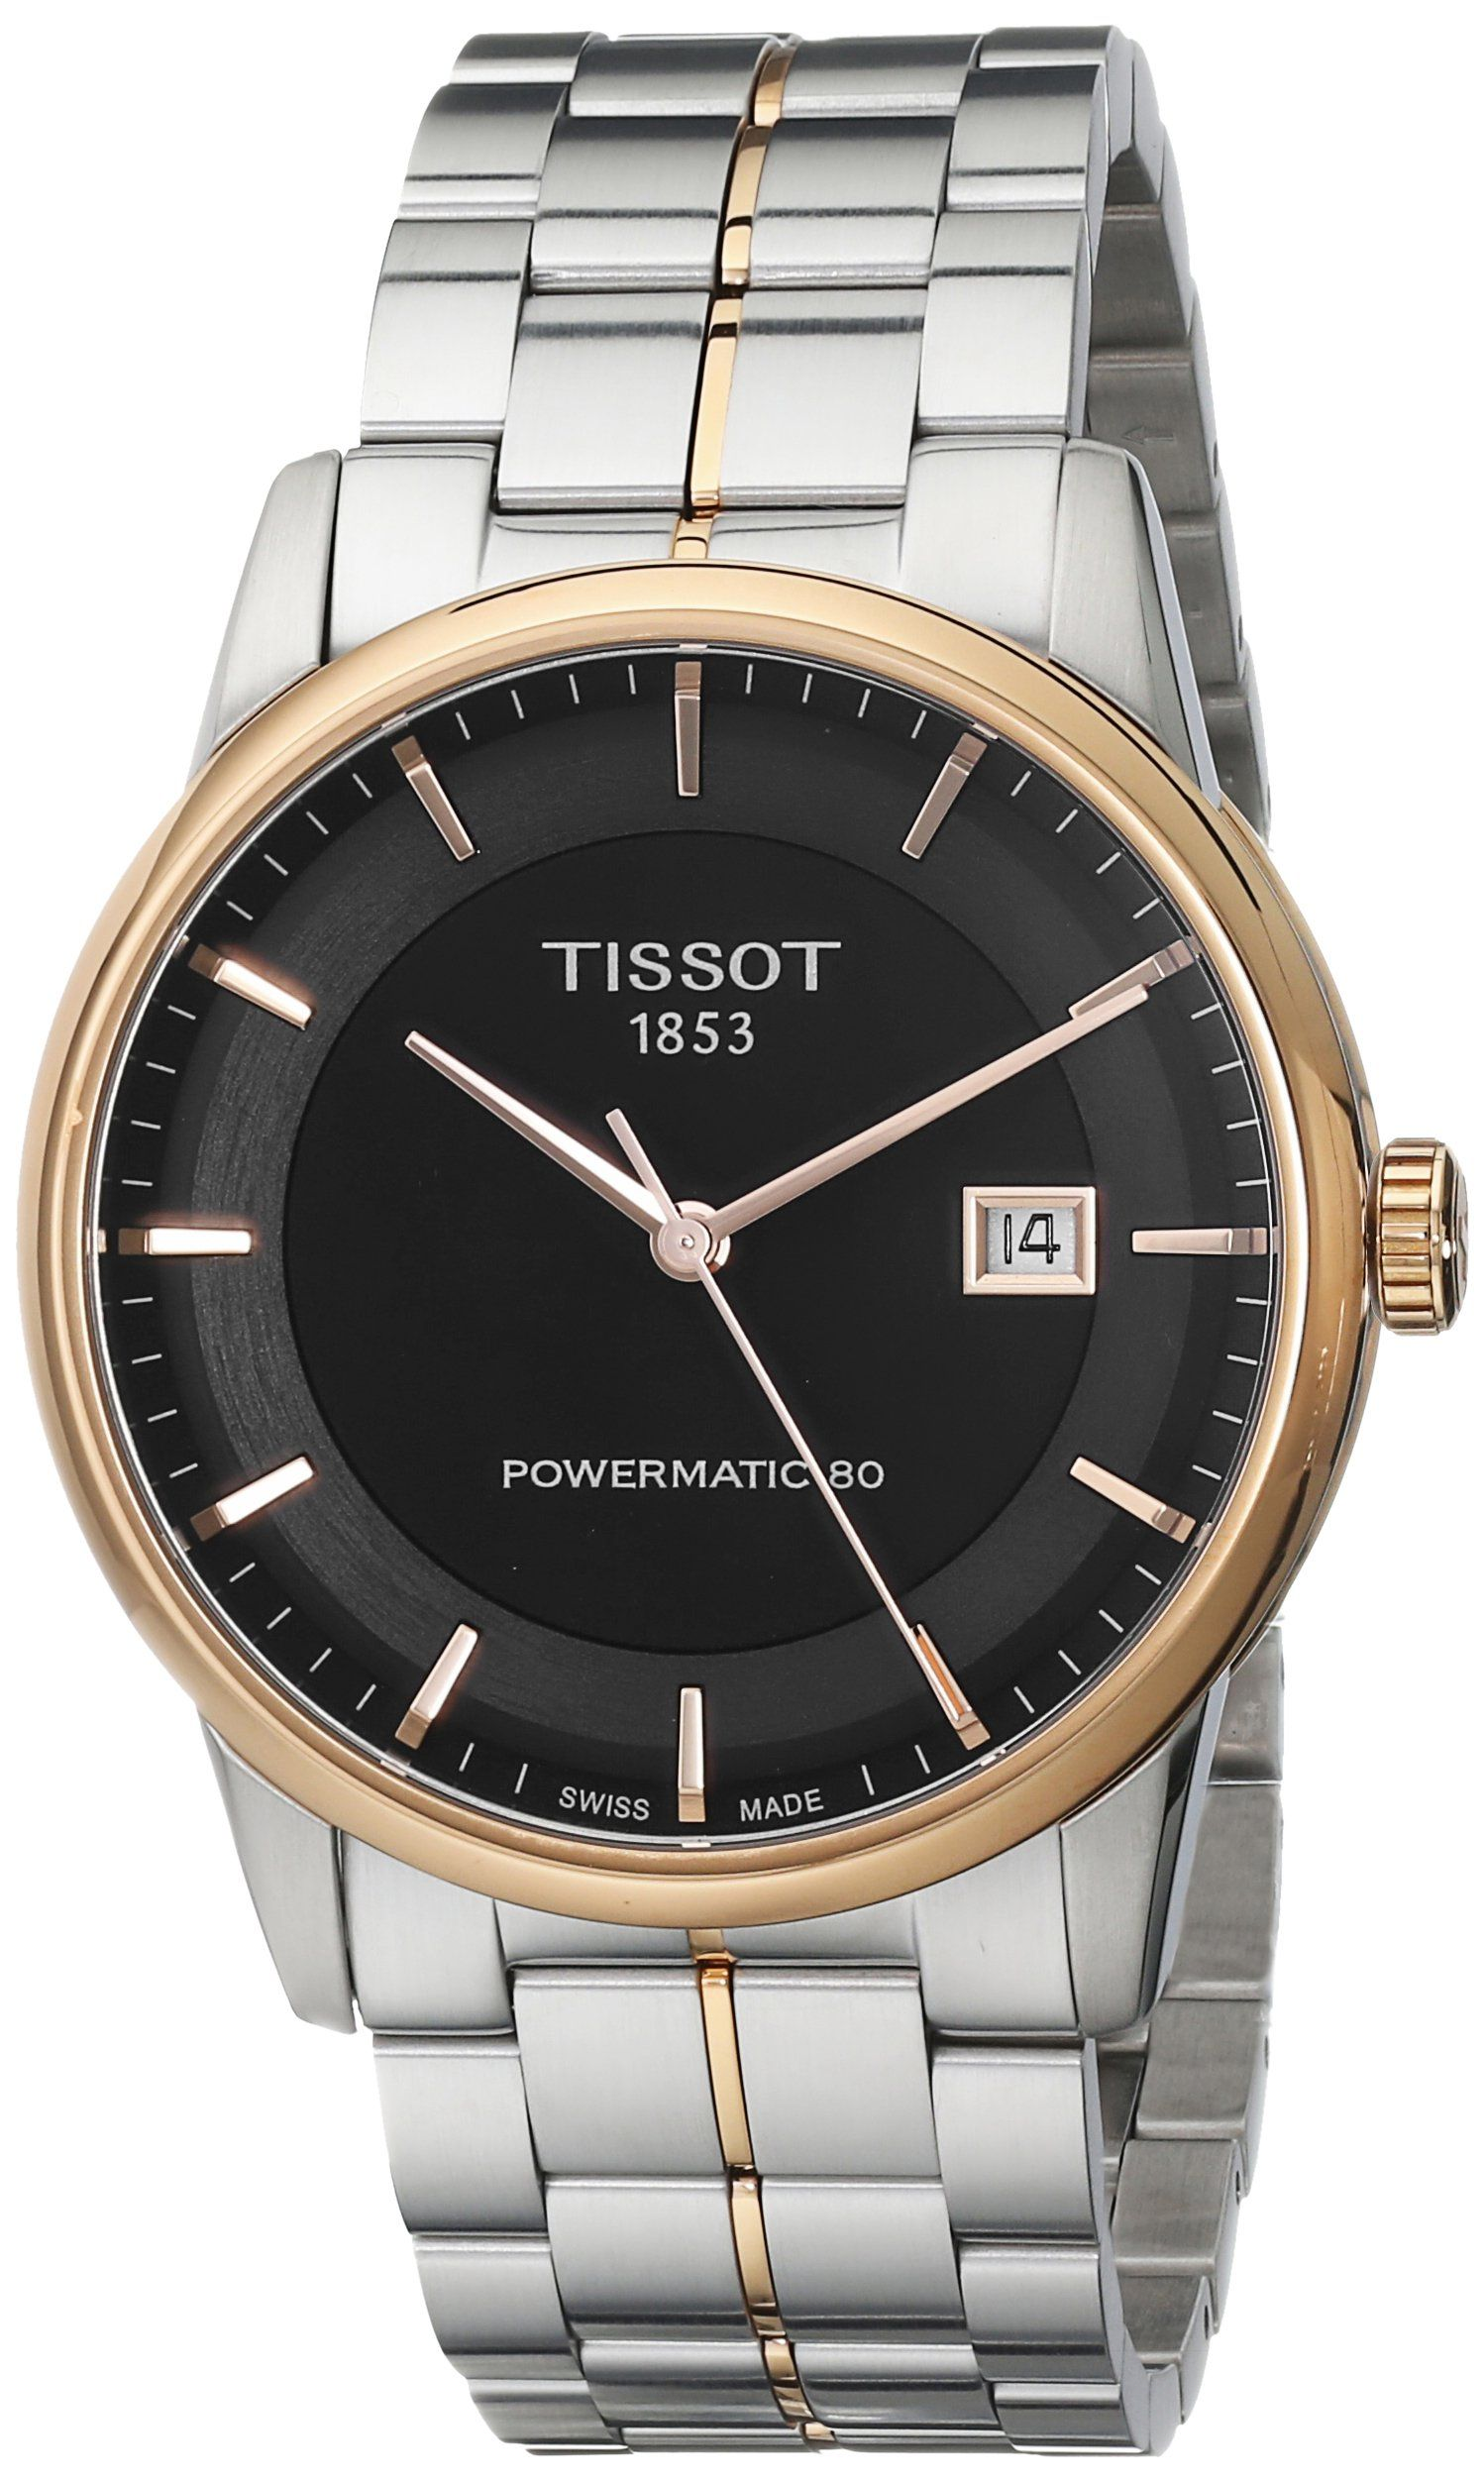 Tissot Men's TIST0864072205100 Powermatic 80 Analog Display Swiss Automatic Two Tone Watch. Stainless steel case with a stainless steel bracelet with rose gold-tone accents. Black dial with rose gold-tone hands and index hour markers. Swiss-automatic Movement. Case Diameter: 41mm. Water Resistant To 165 Feet.